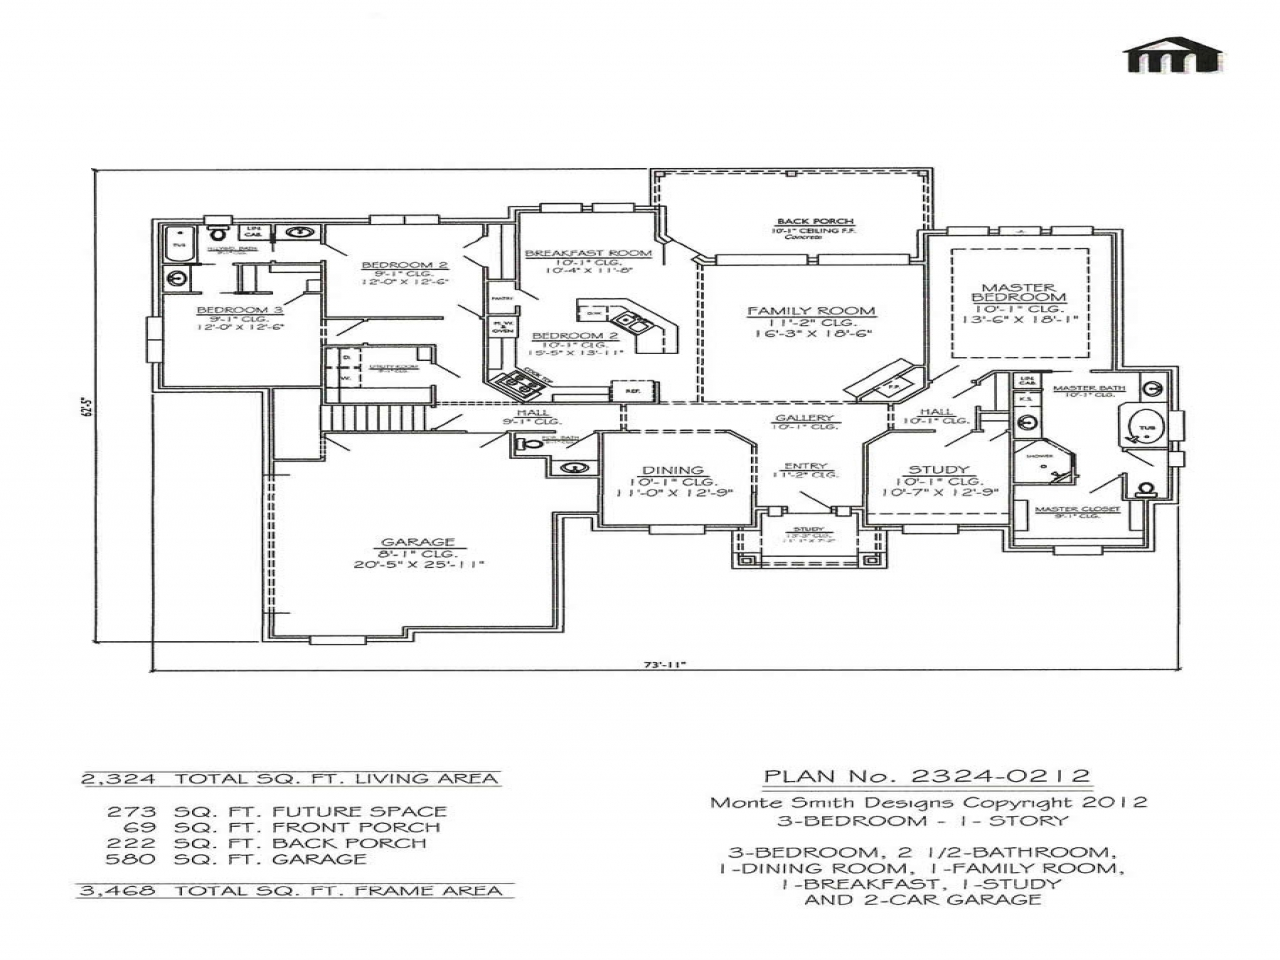 2 story 3 bedroom house plans long lots blueprints 3 for 9 bedroom house plans